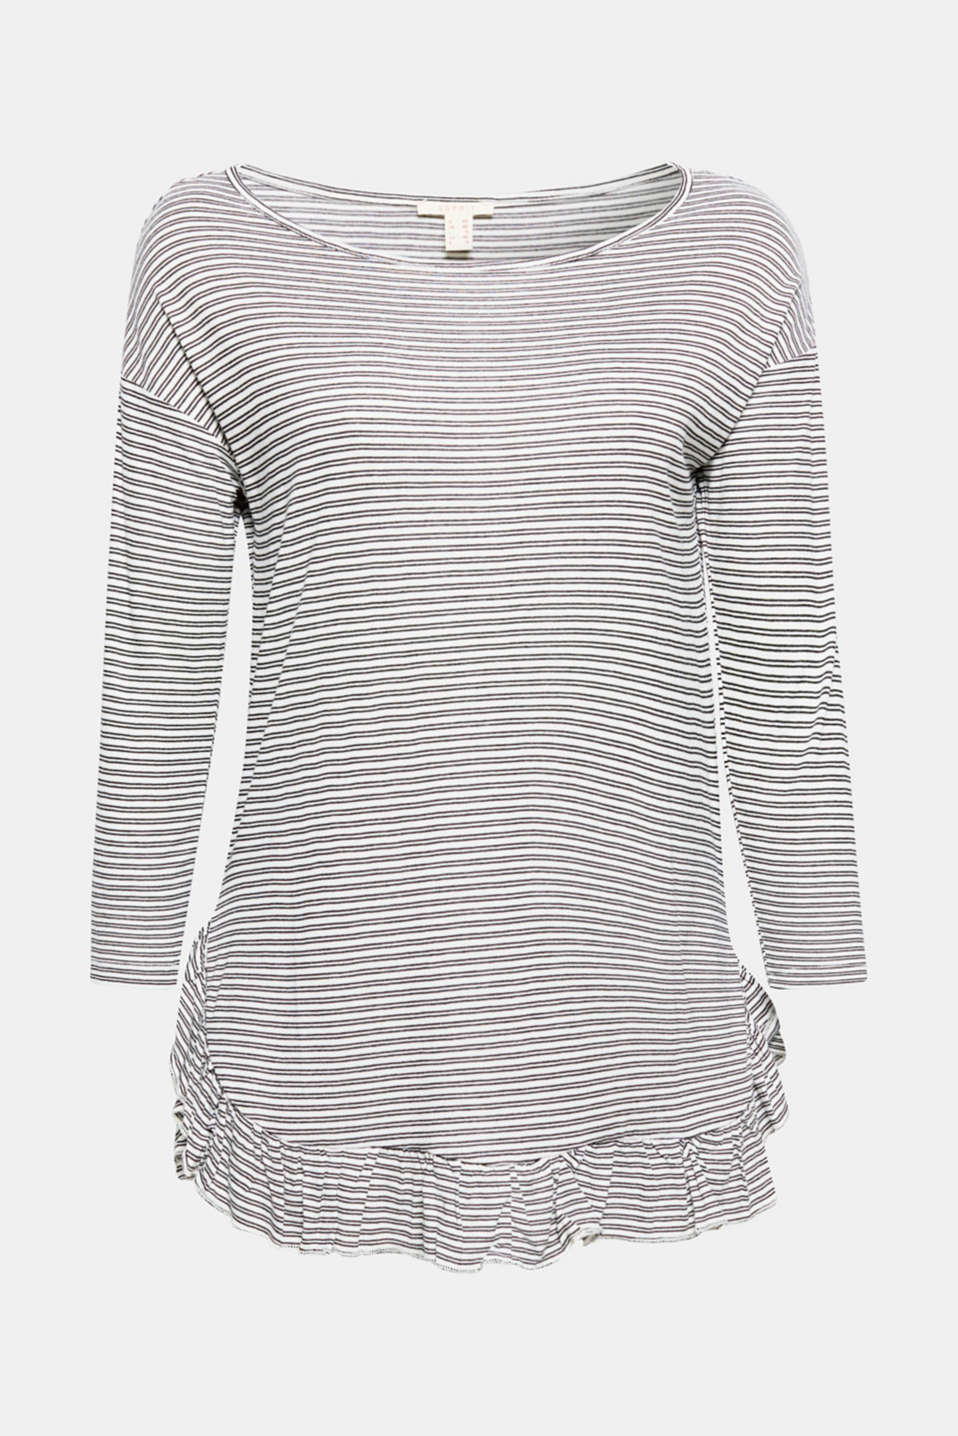 This fashionable striped top feels beautifully soft against the skin and features a trendy, pretty frilled hem!